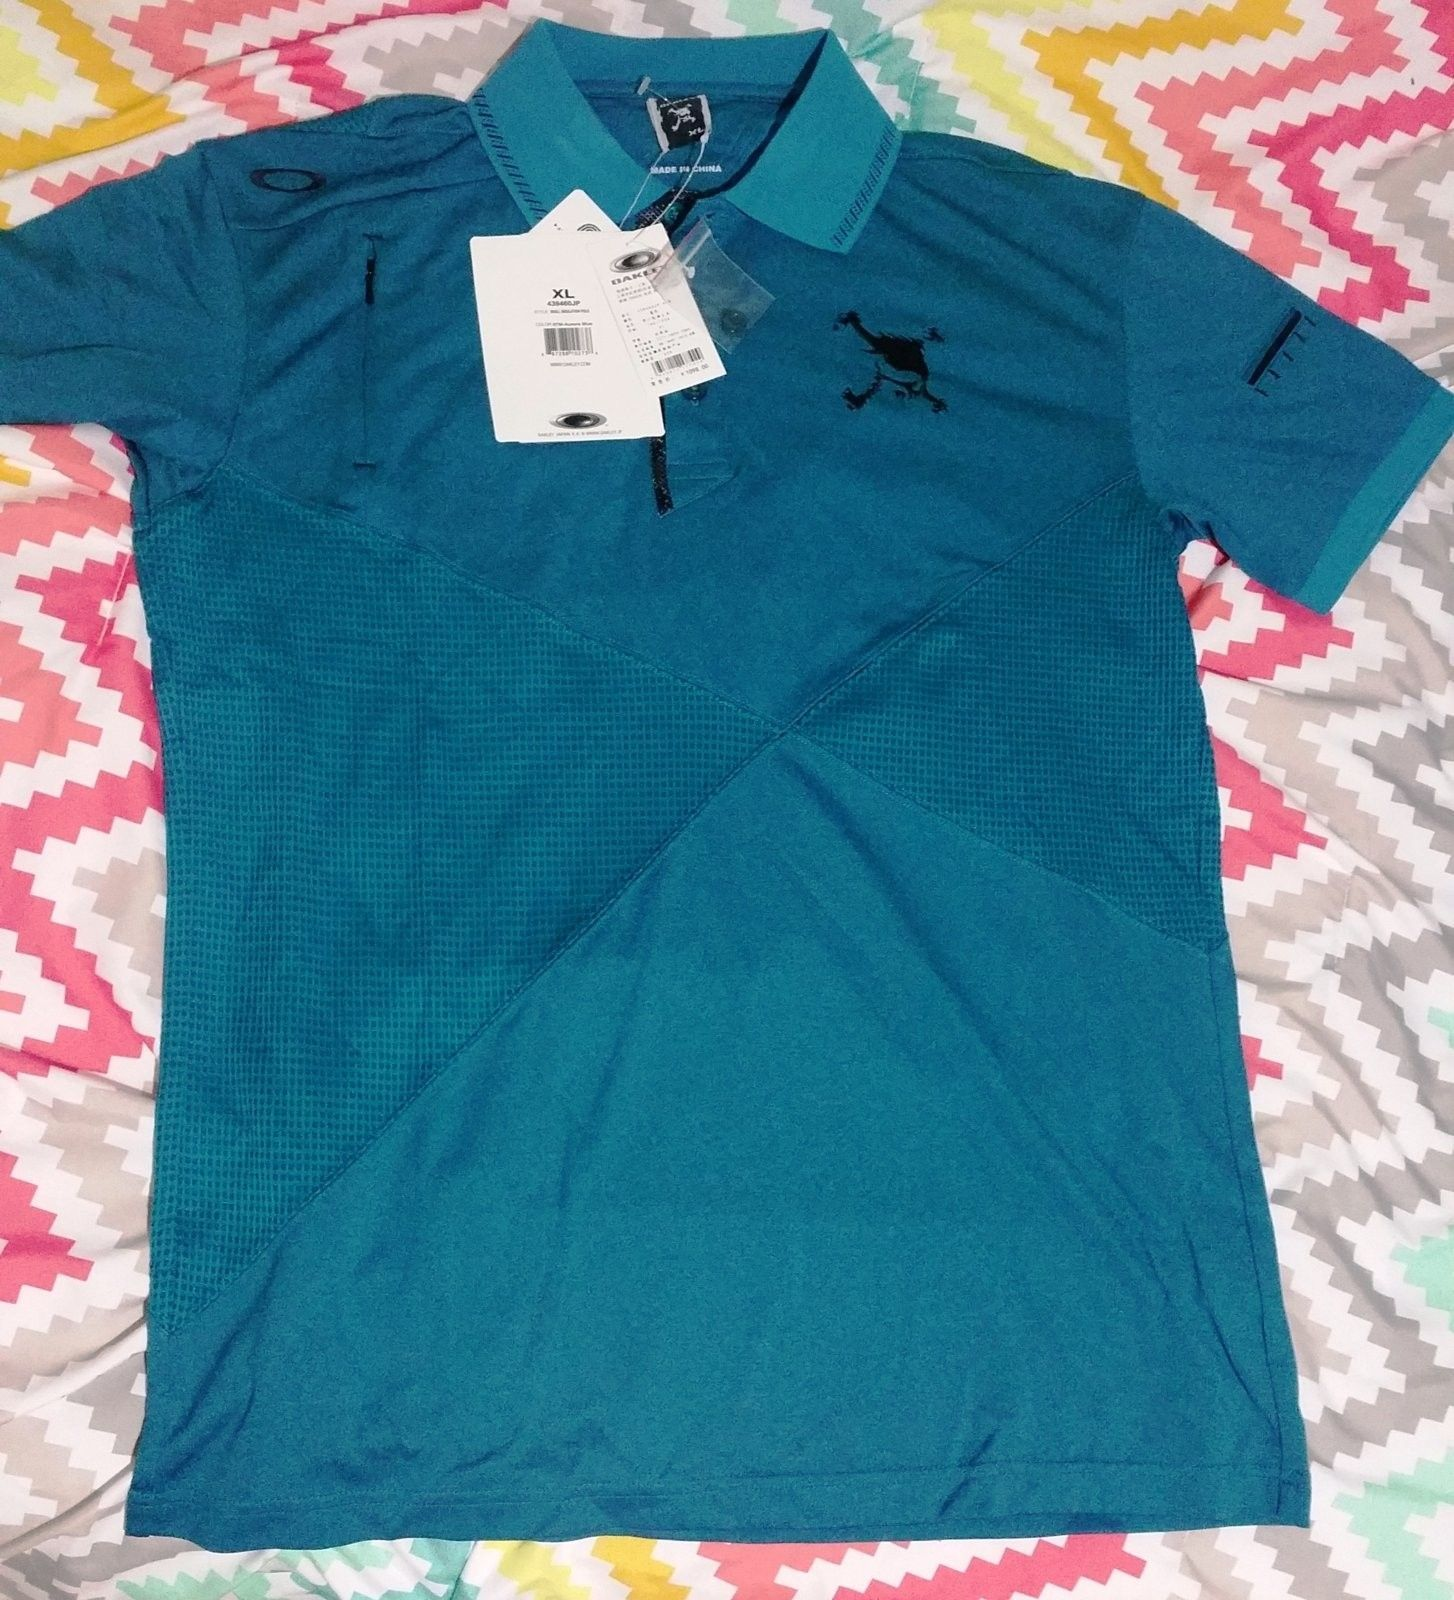 OAKLEY skull polo shirt - 20160706_211759.jpg